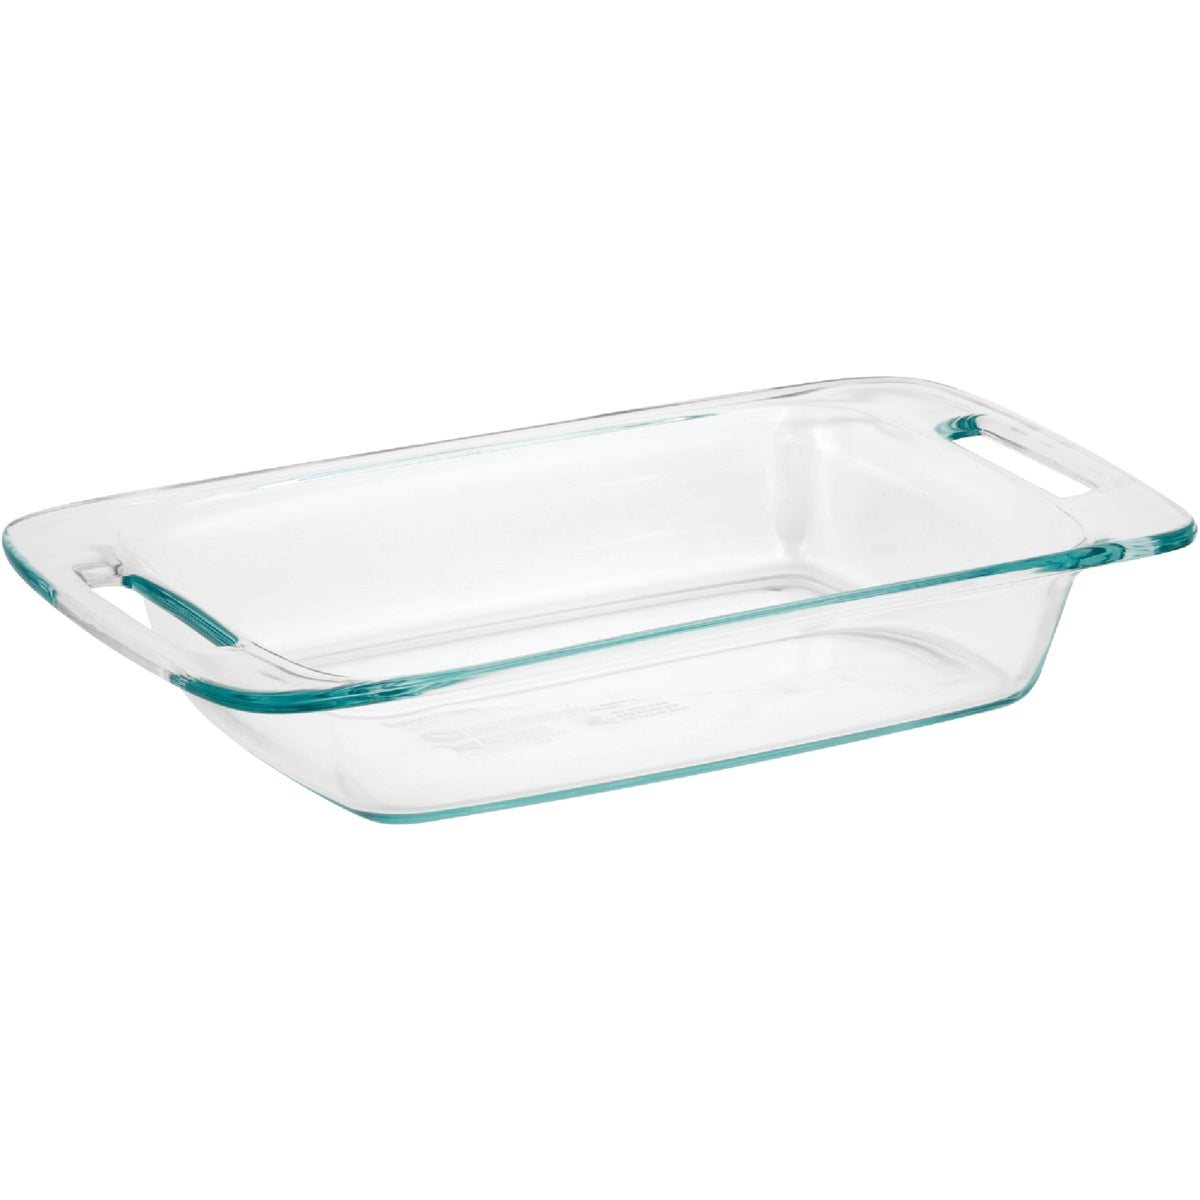 2QT OBLONG BAKING DISH - 1085781 by World Kitchen